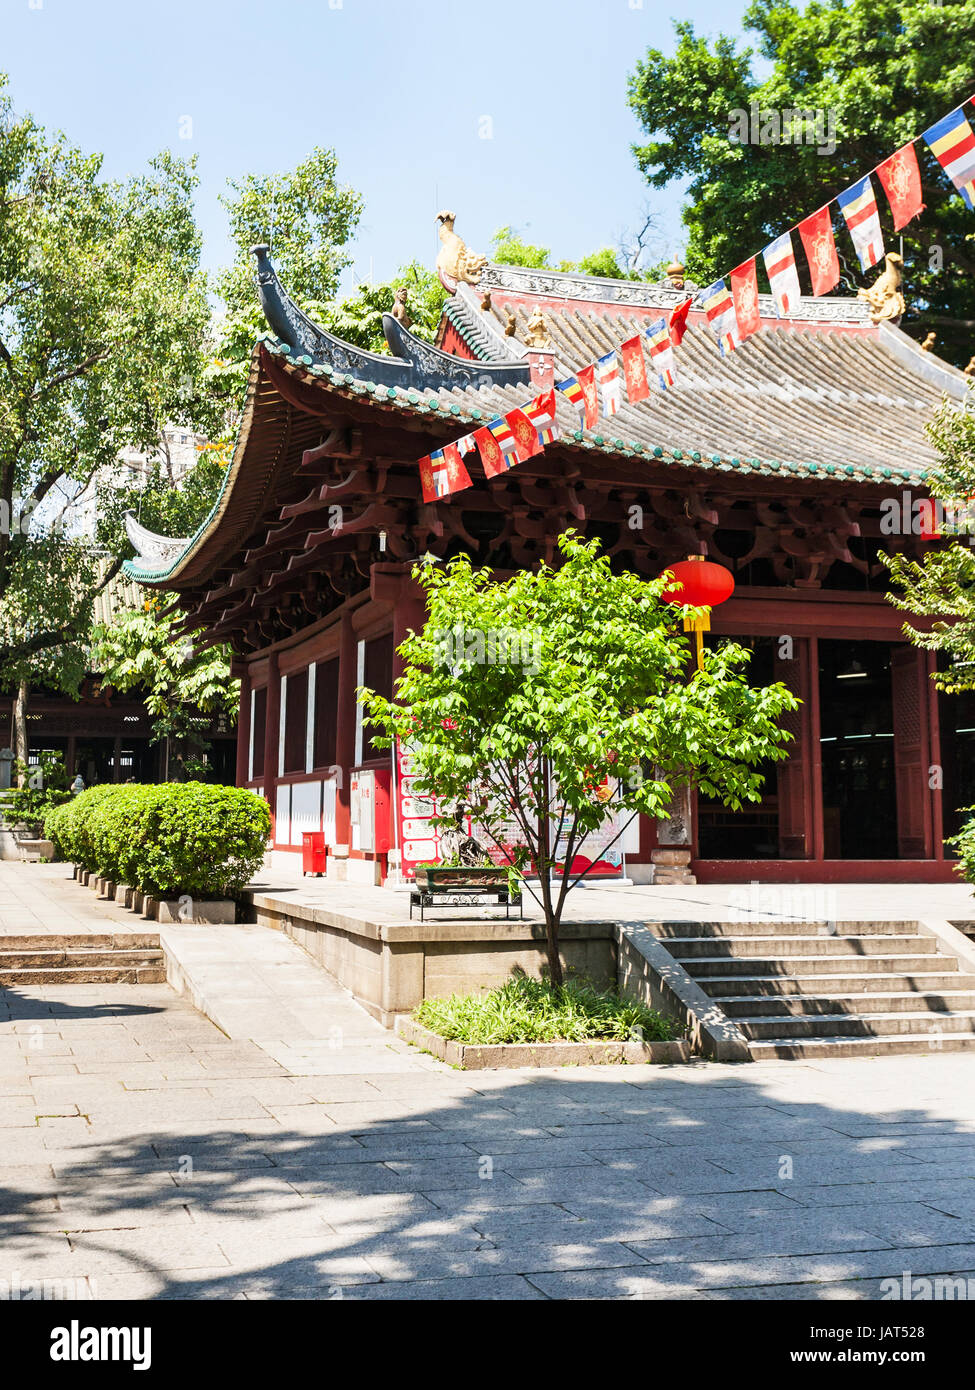 GUANGZHOU, CHINA - APRIL 1, 2017: courtyard of Guangxiao Temple (Bright Obedience, Bright Filial Piety Temple). - Stock Image